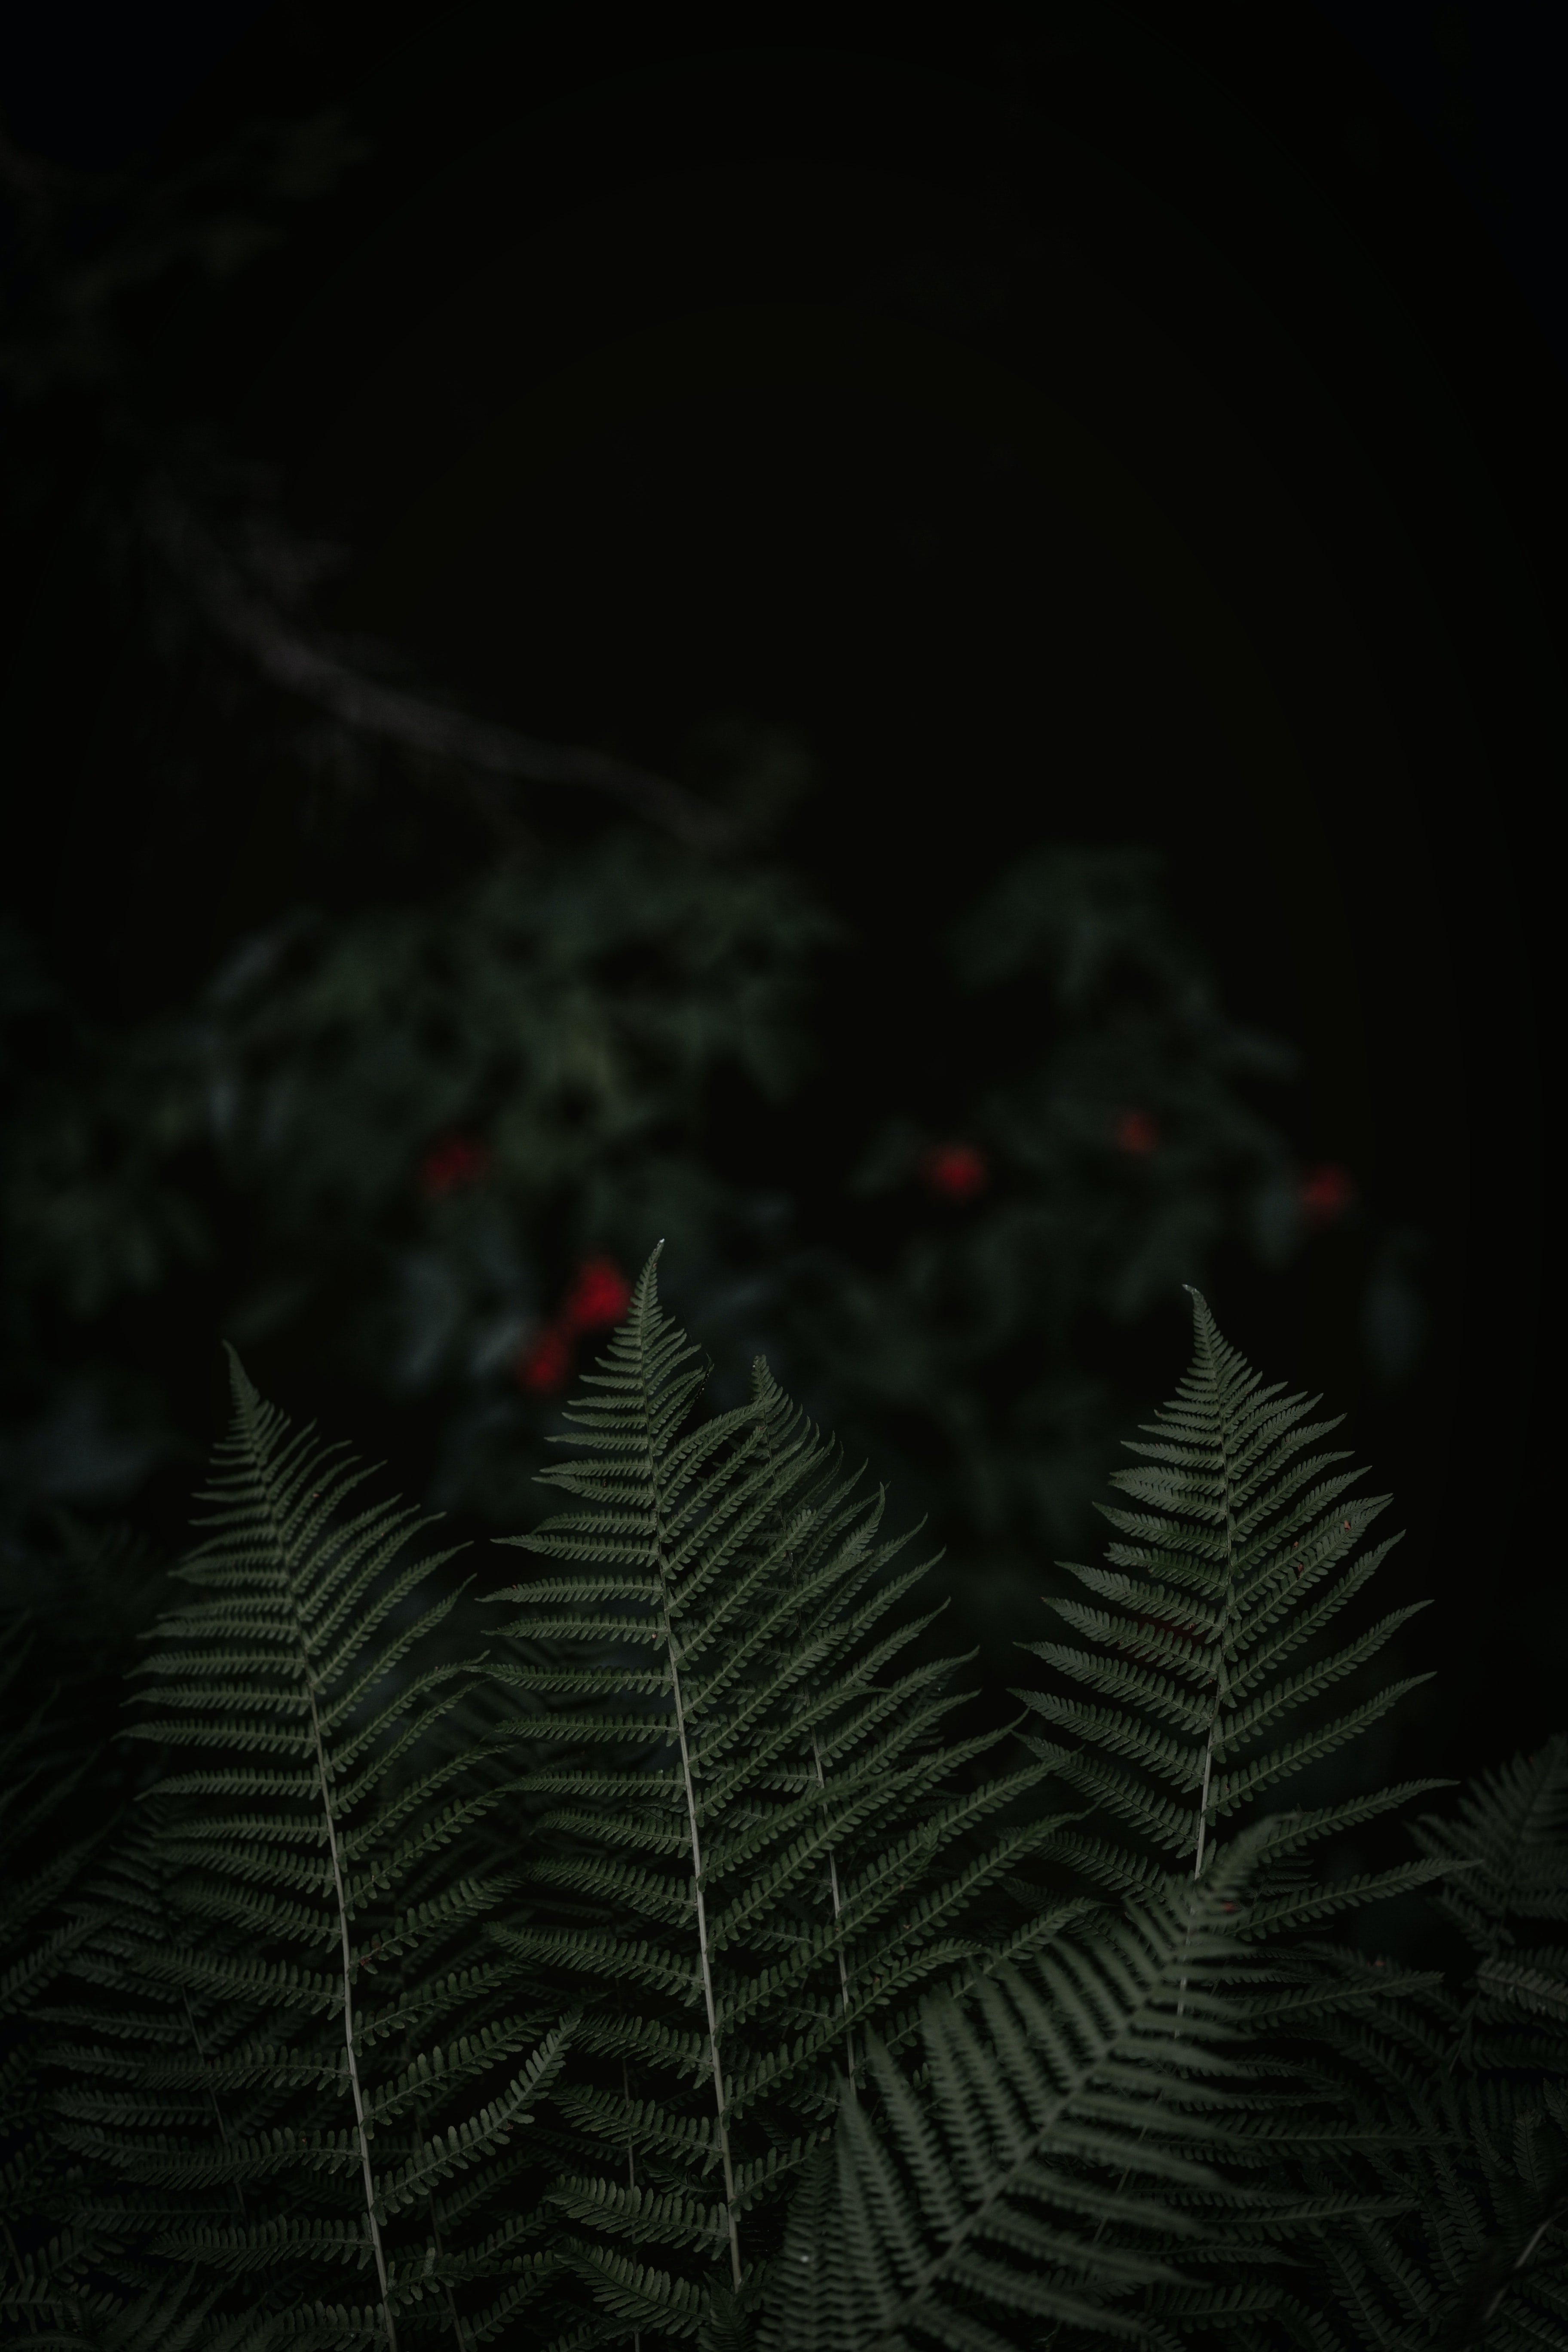 focused photo of green leaves during nighttime